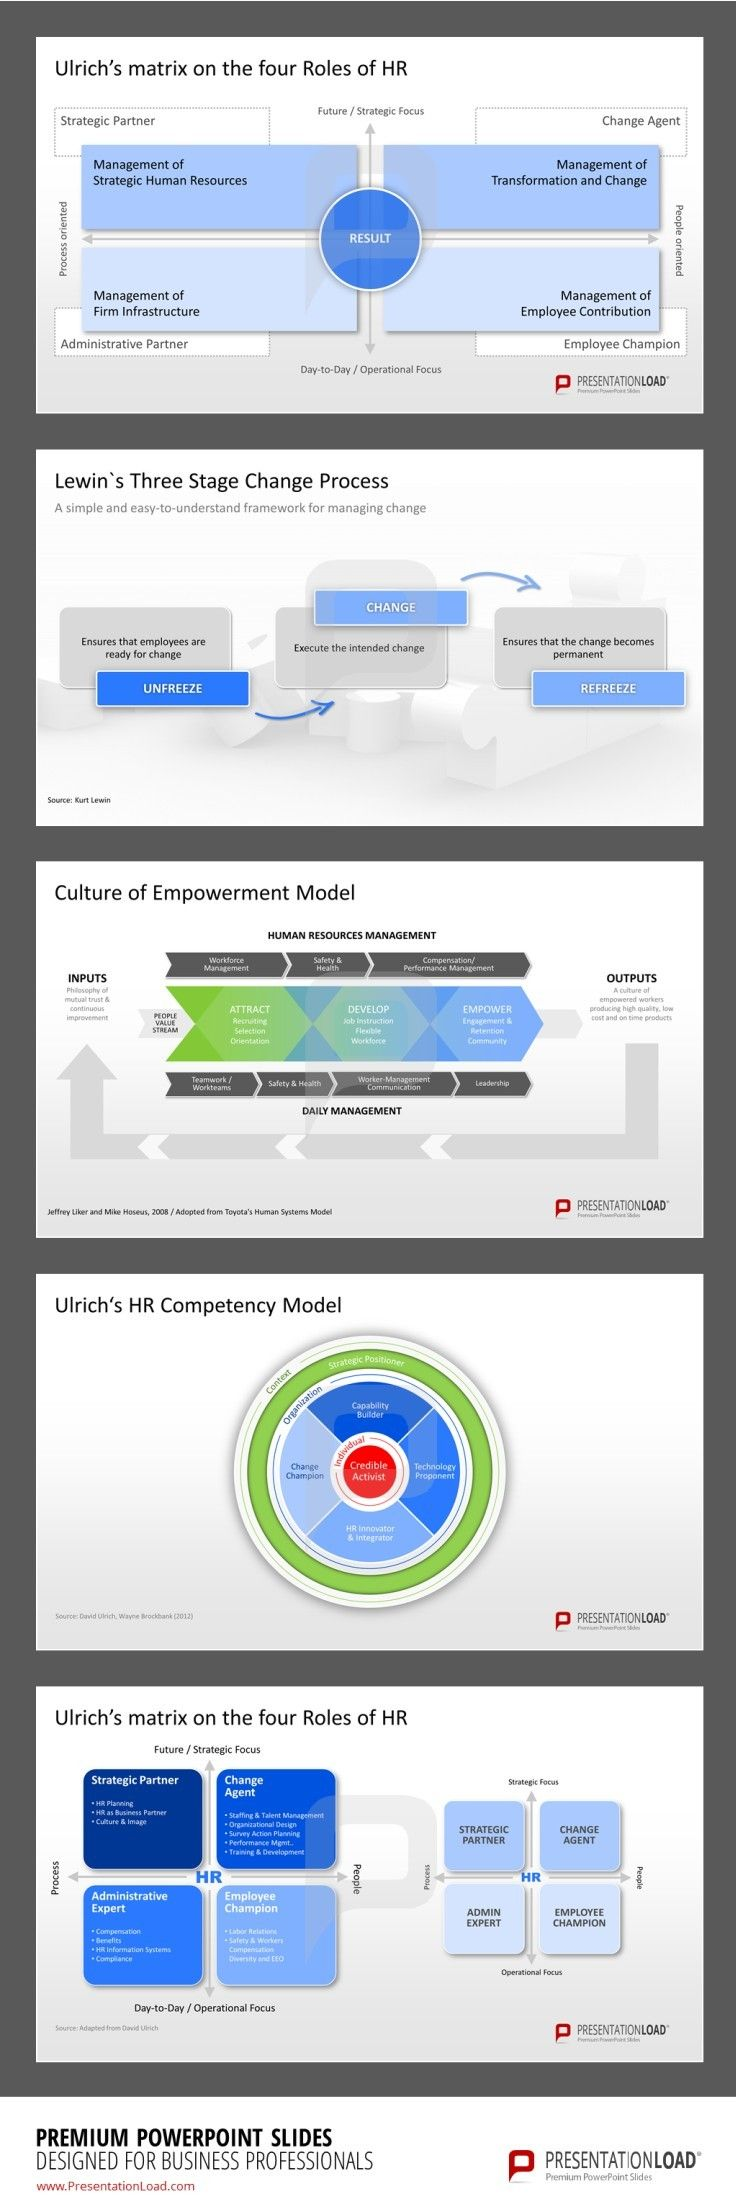 28 best POWERPOINT BEISPIELE images on Pinterest | Charts, Graphics ...